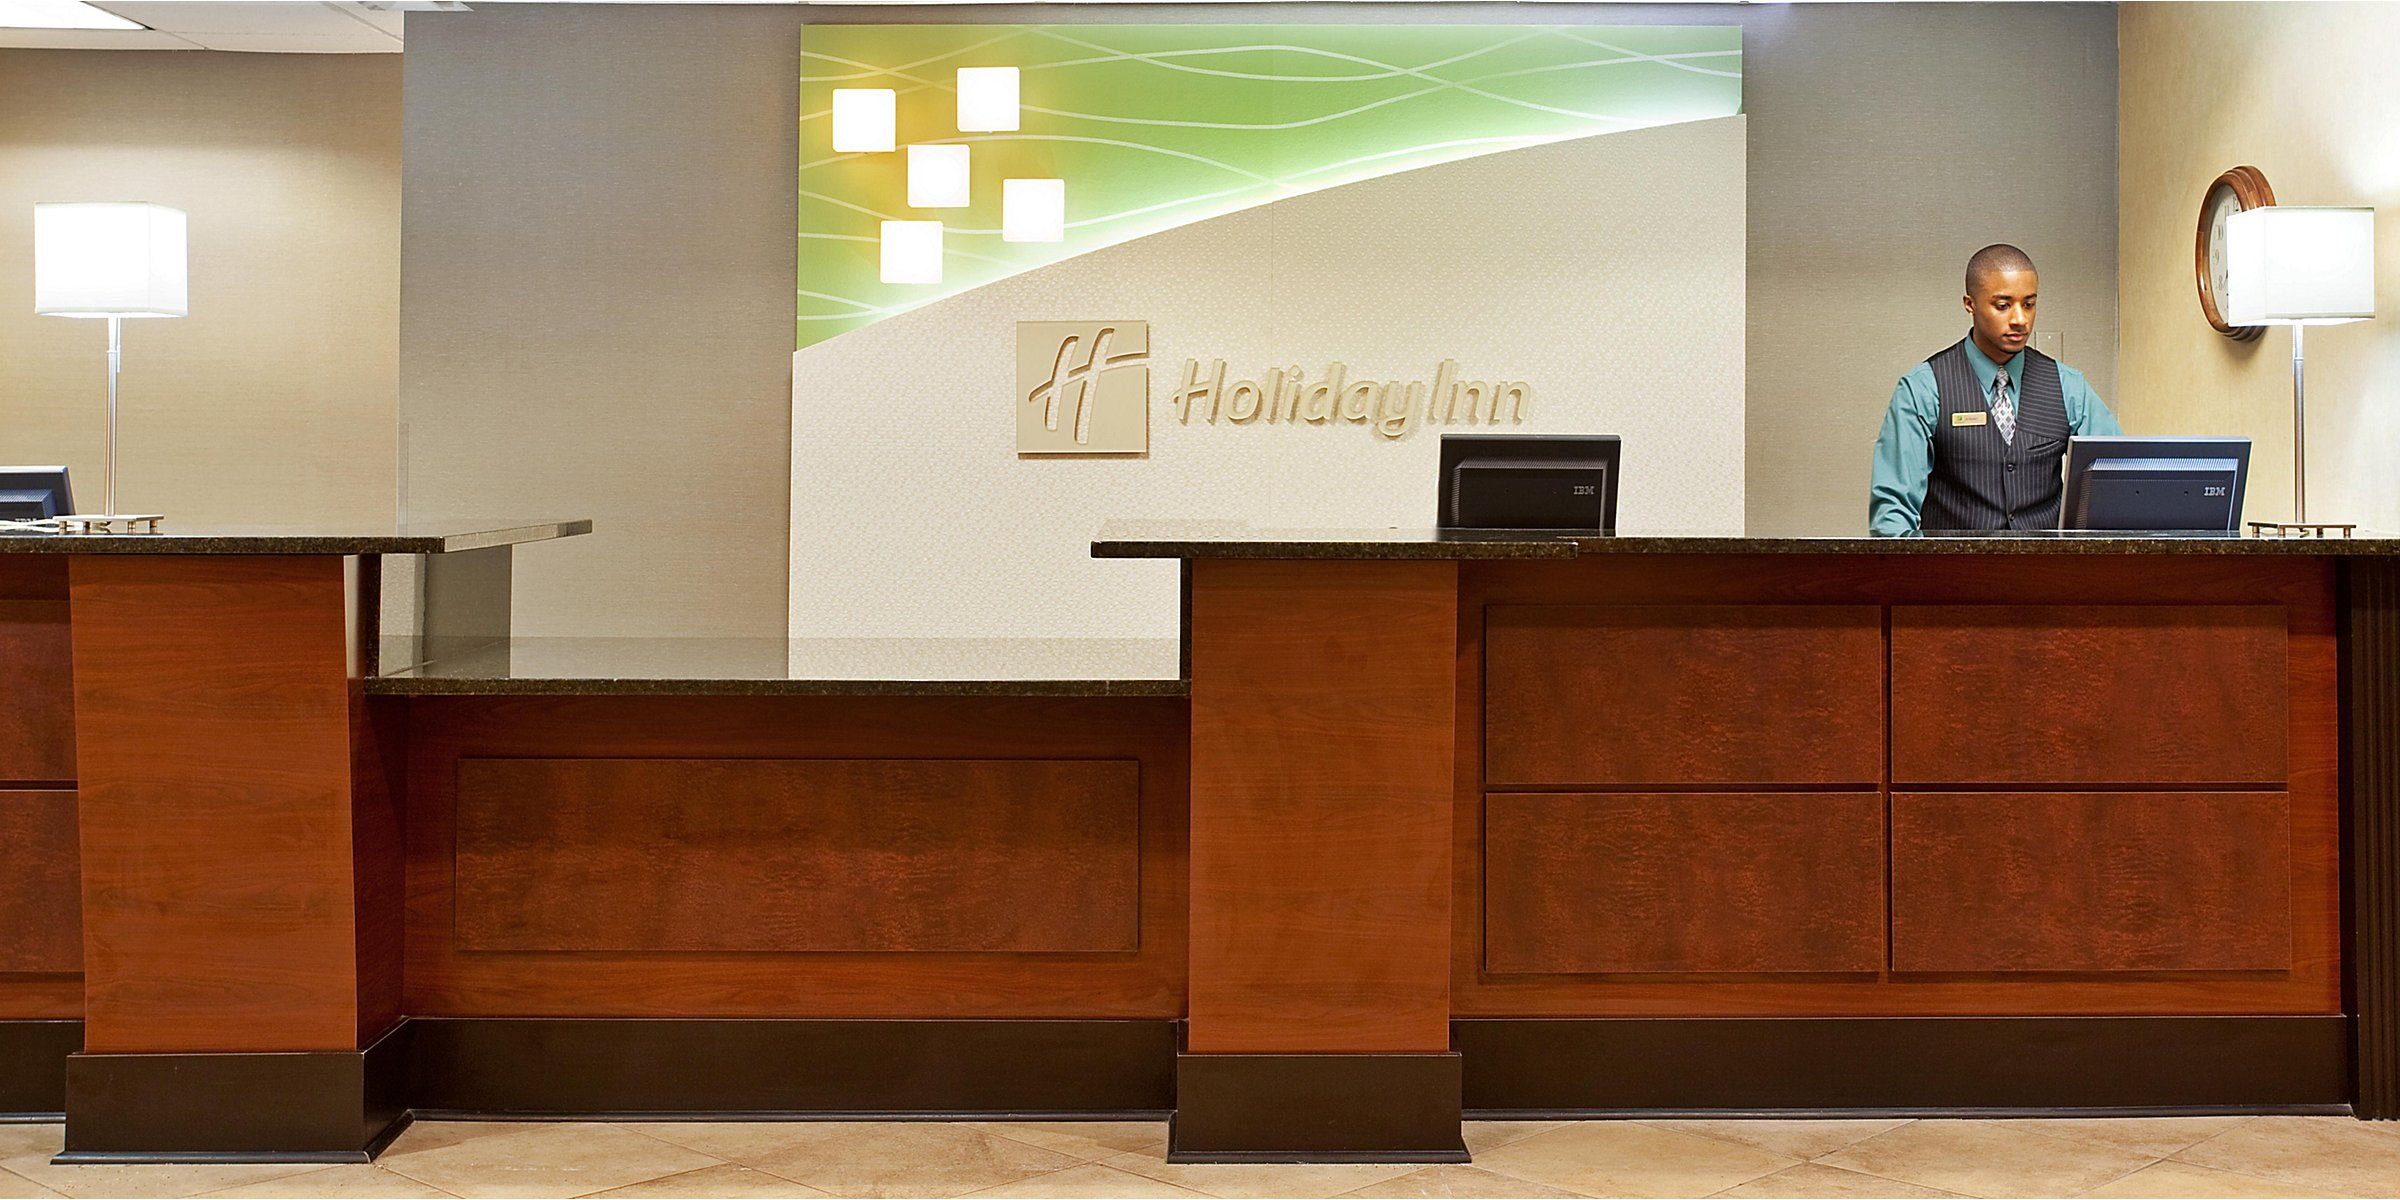 Map Of America Rockford.Holiday Inn Rockford I 90 Rt 20 State St Hotel By Ihg